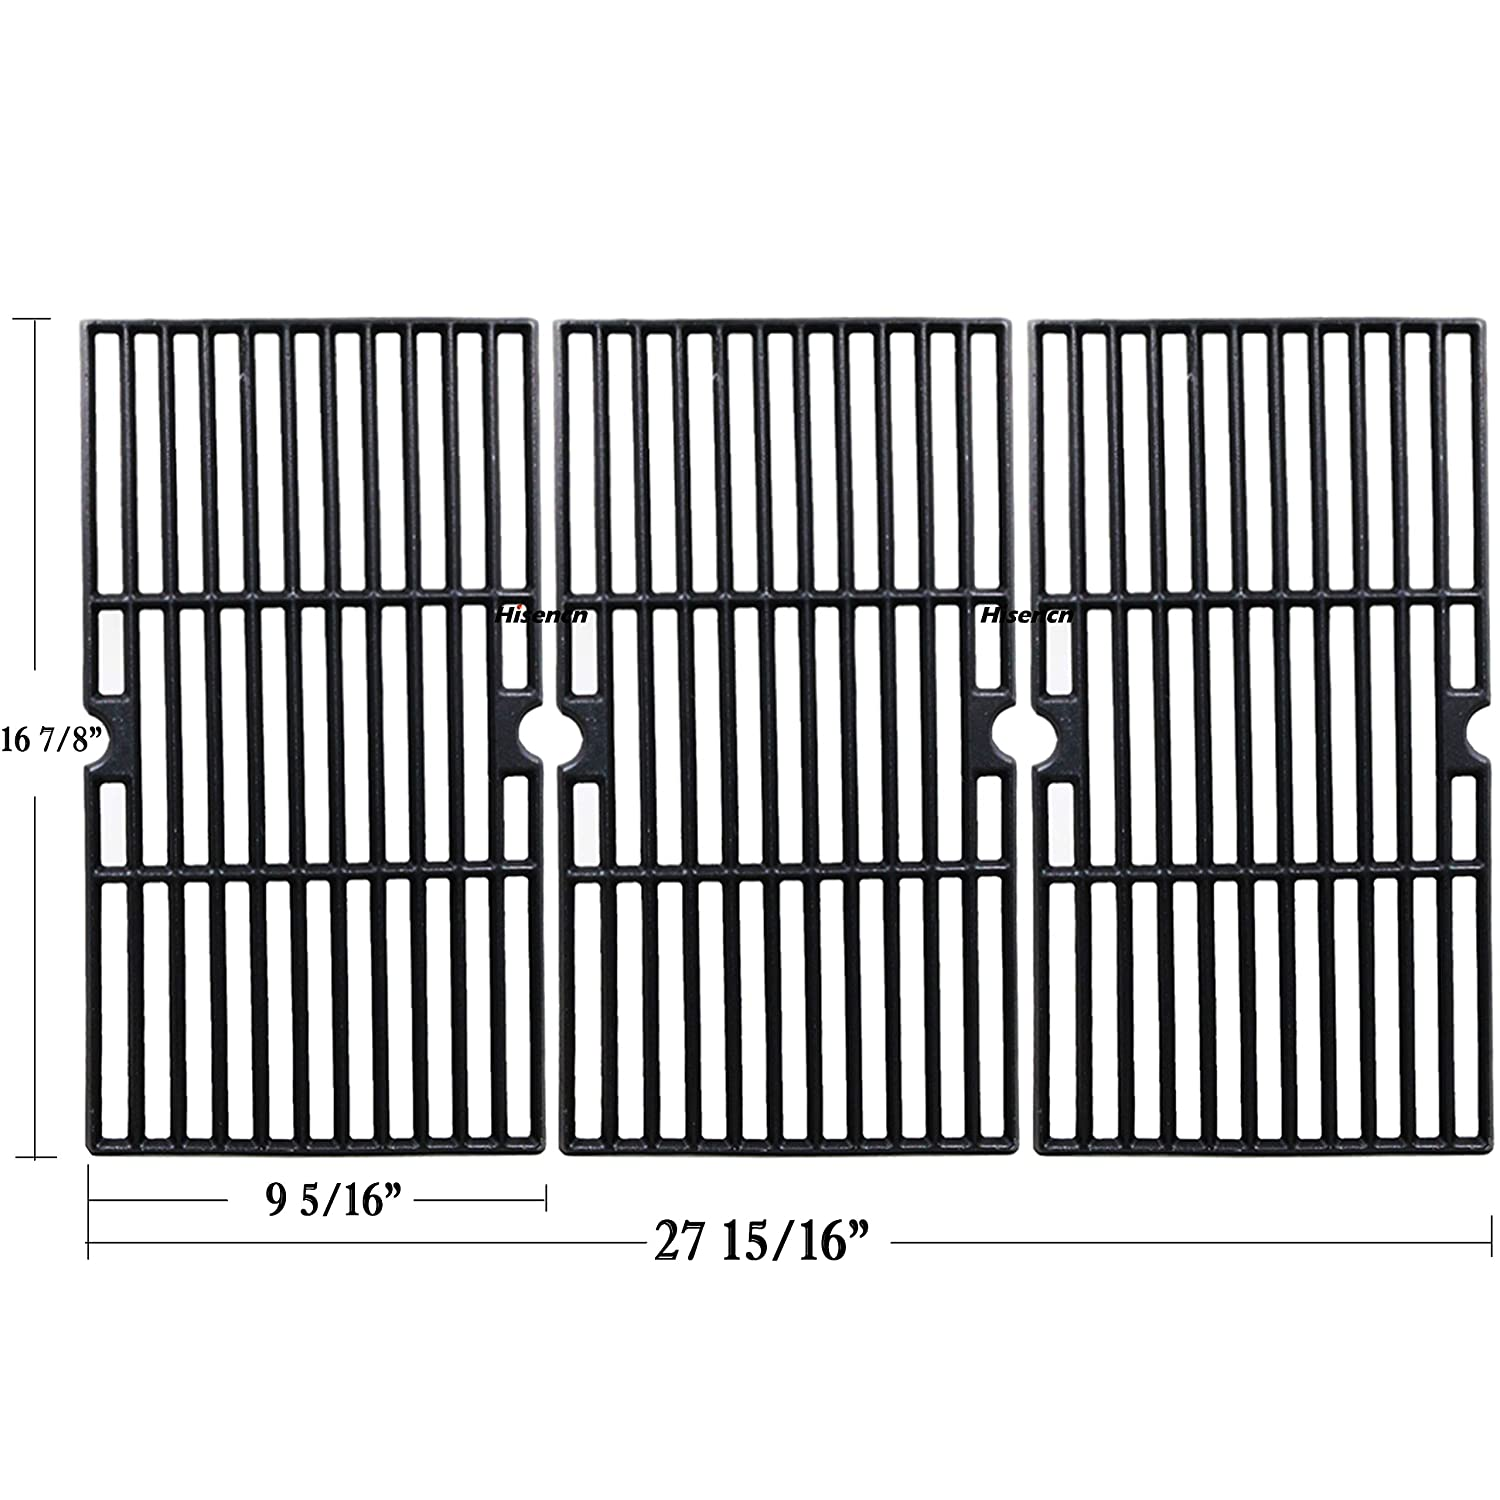 bbq factory JGX763 Replacement Cast Iron Cooking Grid Porcelain coated Set of 3 for Select Gas Grill Models By Charbroil, Kenmore, Master Chef and Others bbq factory® H6038763CG